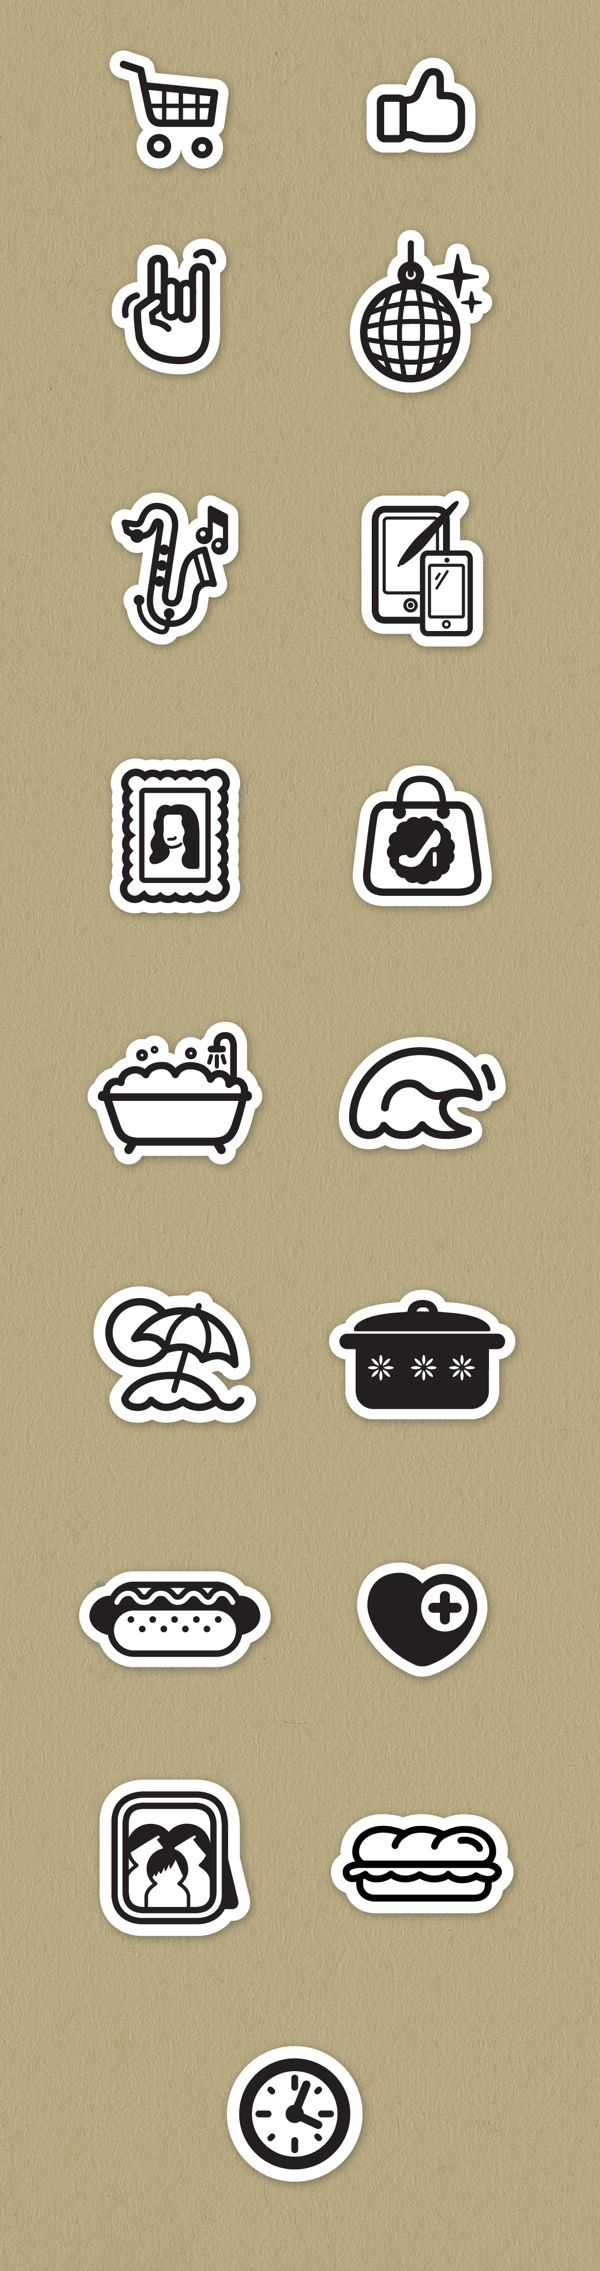 Social Icons by Jorge Dias, via Behance